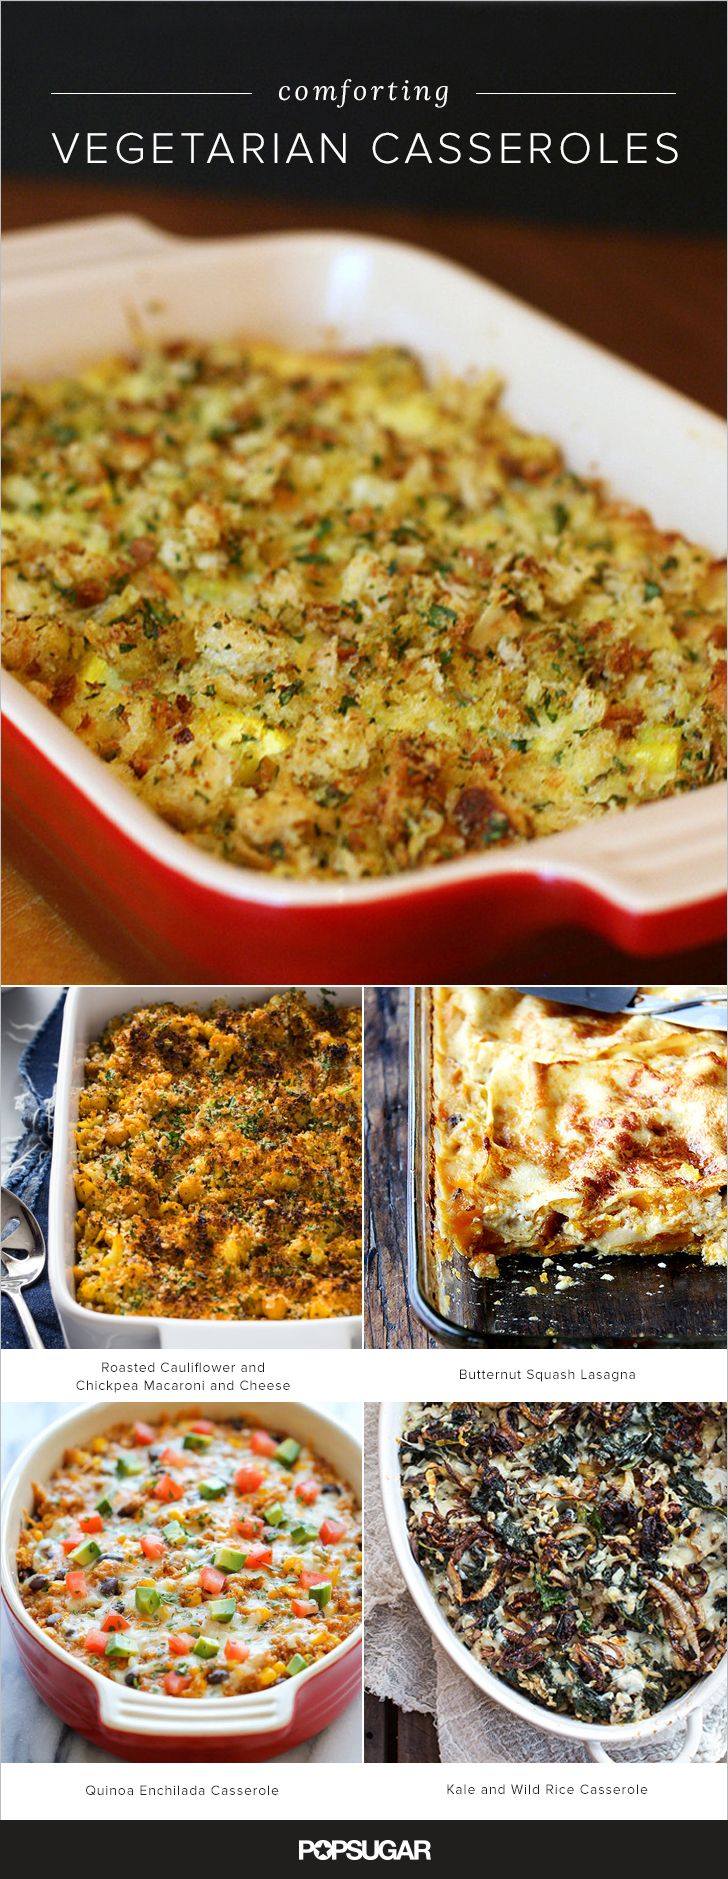 Feed a Crowd With One of These Comforting Vegetarian Casseroles